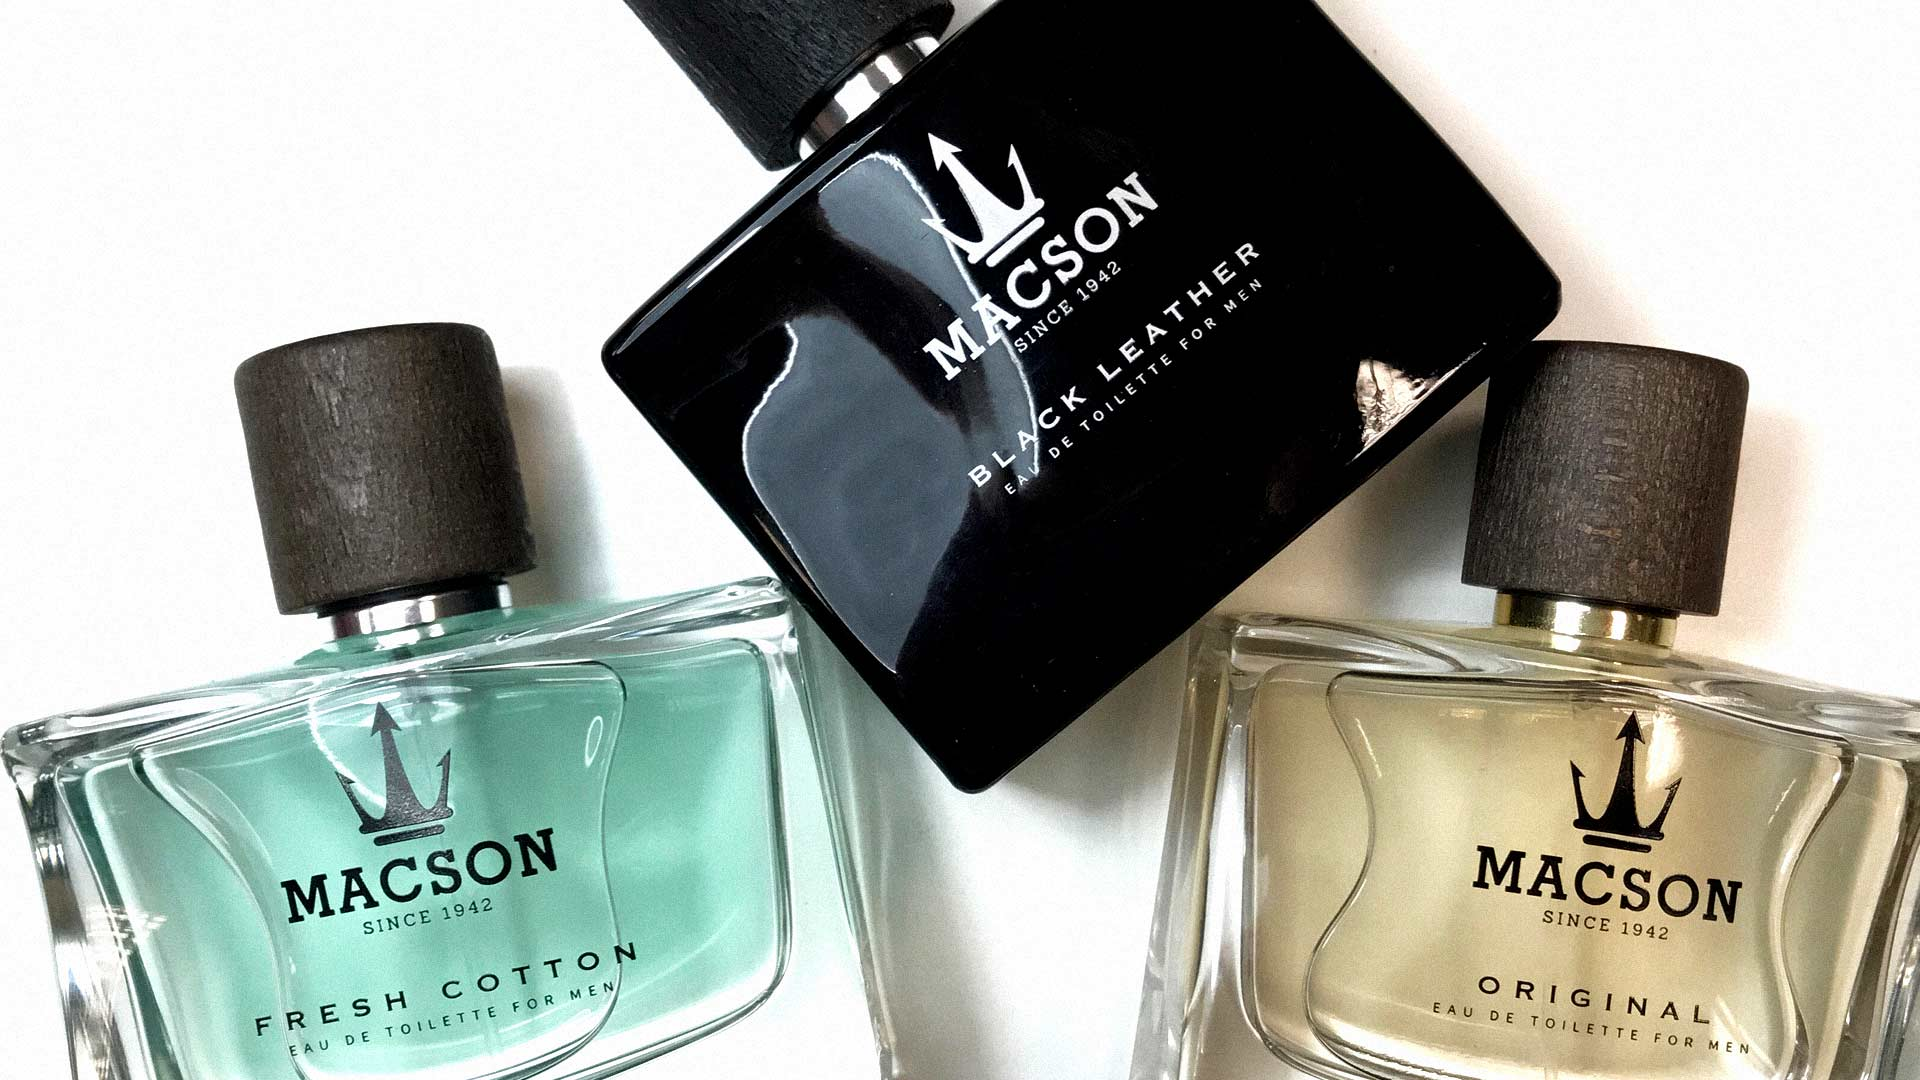 Macson-Fragancia-Original-Fresh-Cotton-Black-LeatherMagasalfa-Fragrances